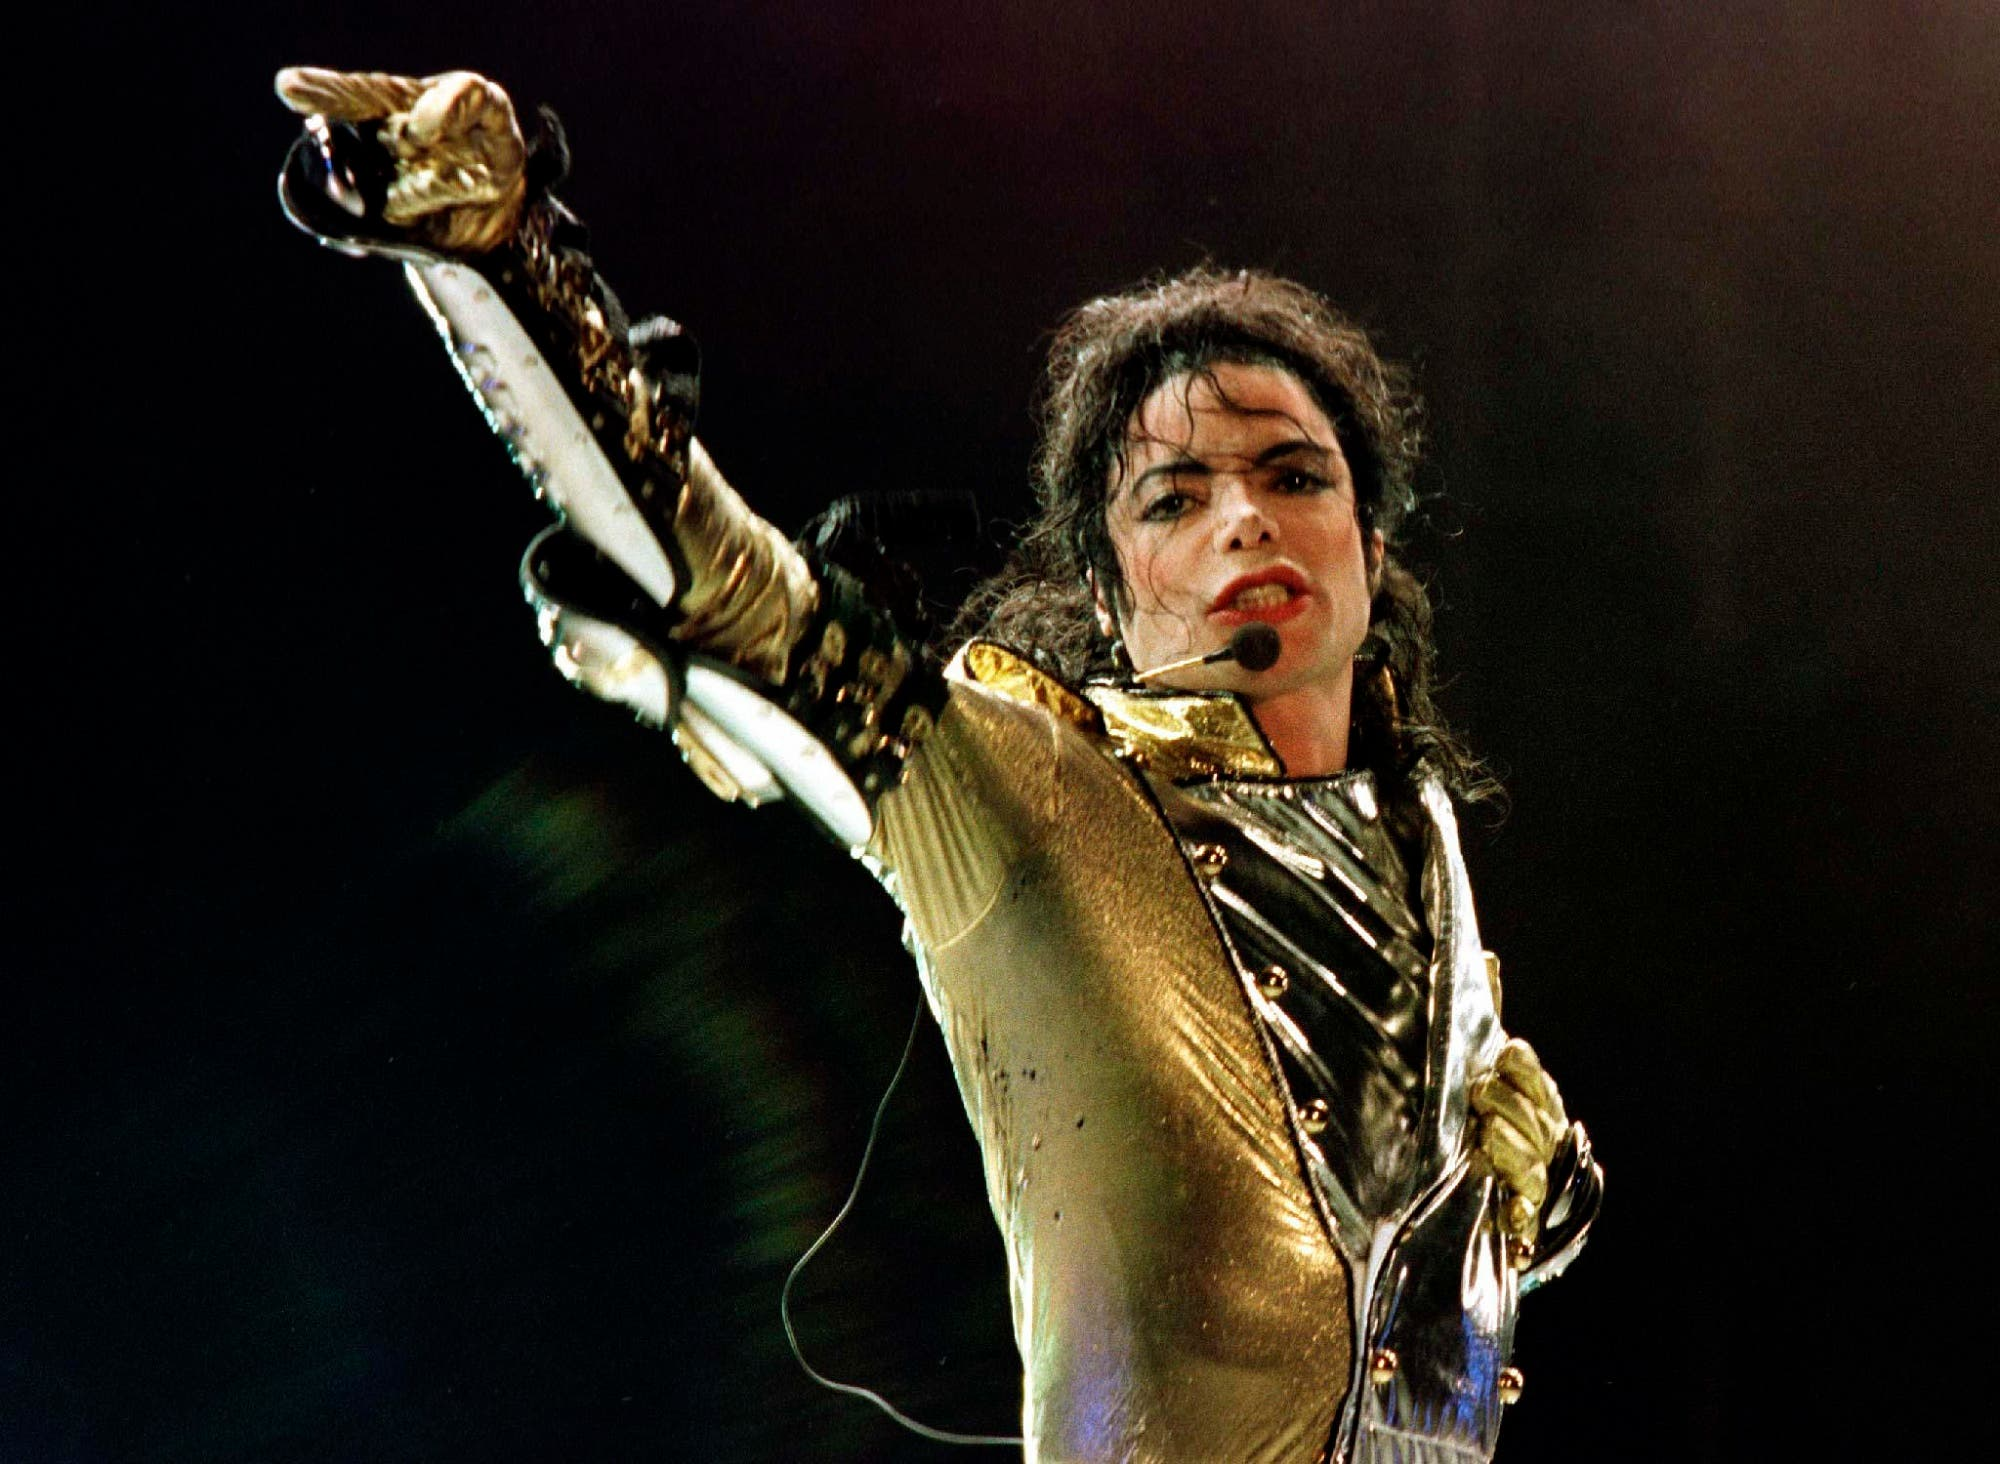 US popstar Michael Jackson performs during his HIStory World Tour concert in Vienna, on July 2, 1997. (Reuters)